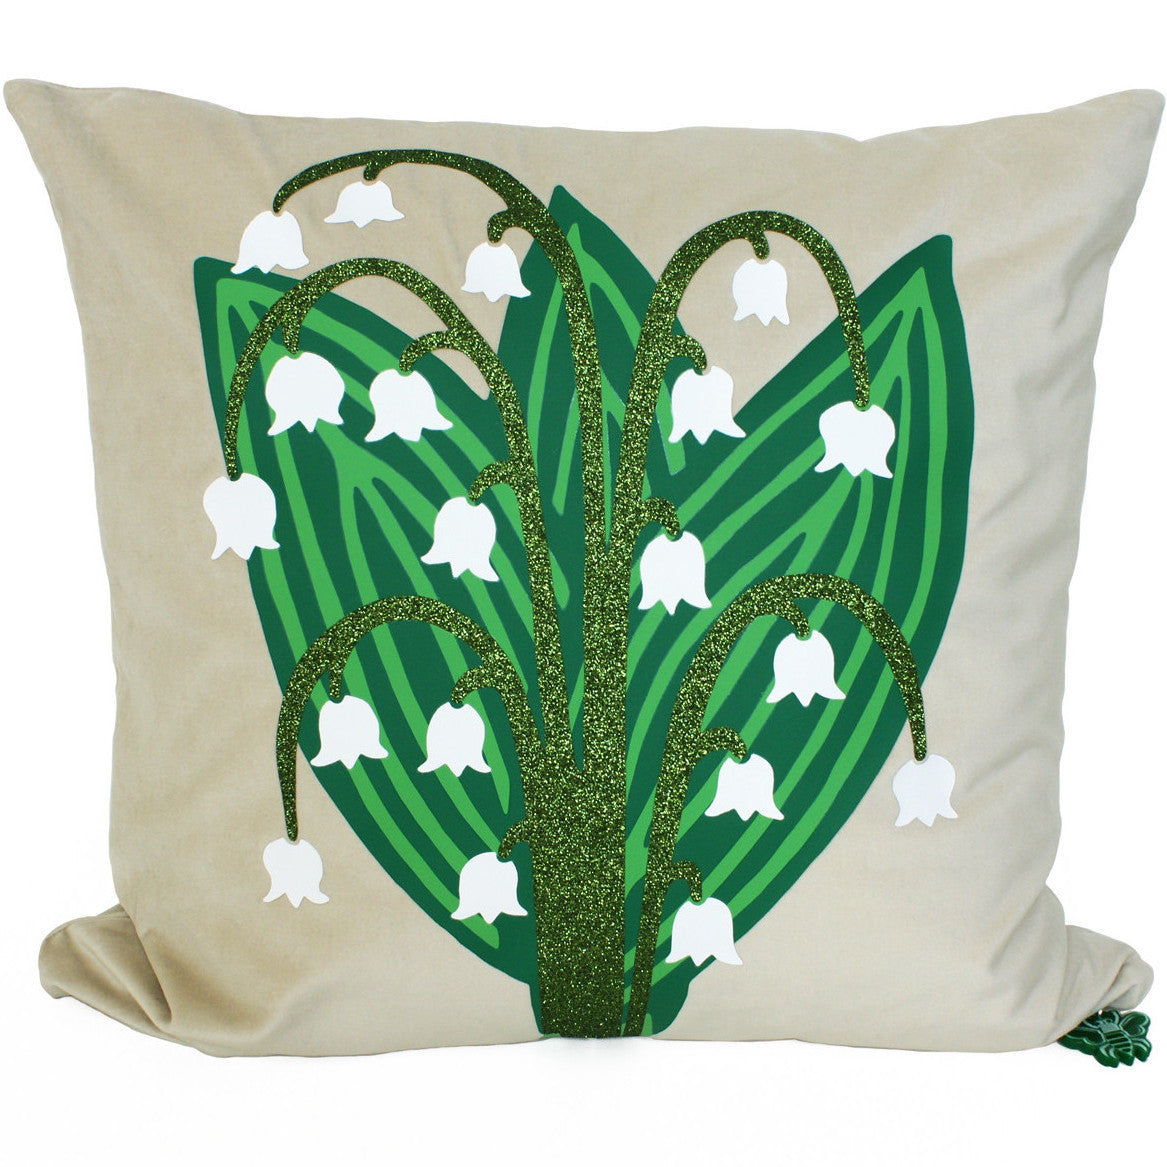 Brit and Bee Lillies and Ladybirds Throw Pillow FRONT